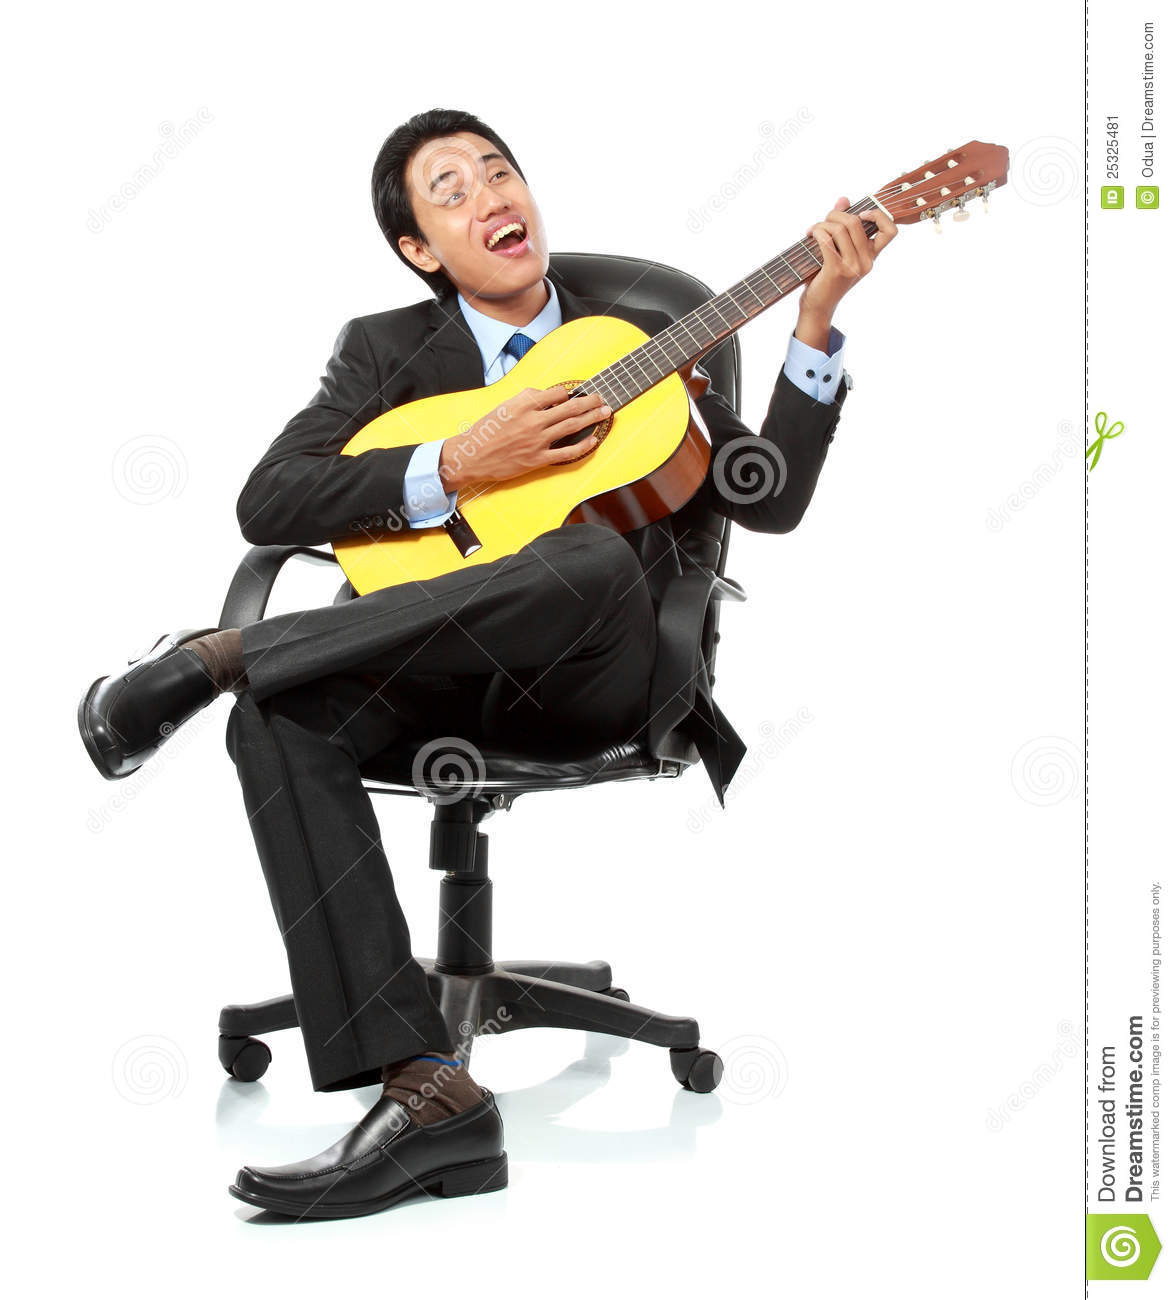 guitar playing chair land of nod businessman relaxing stock image 25325481